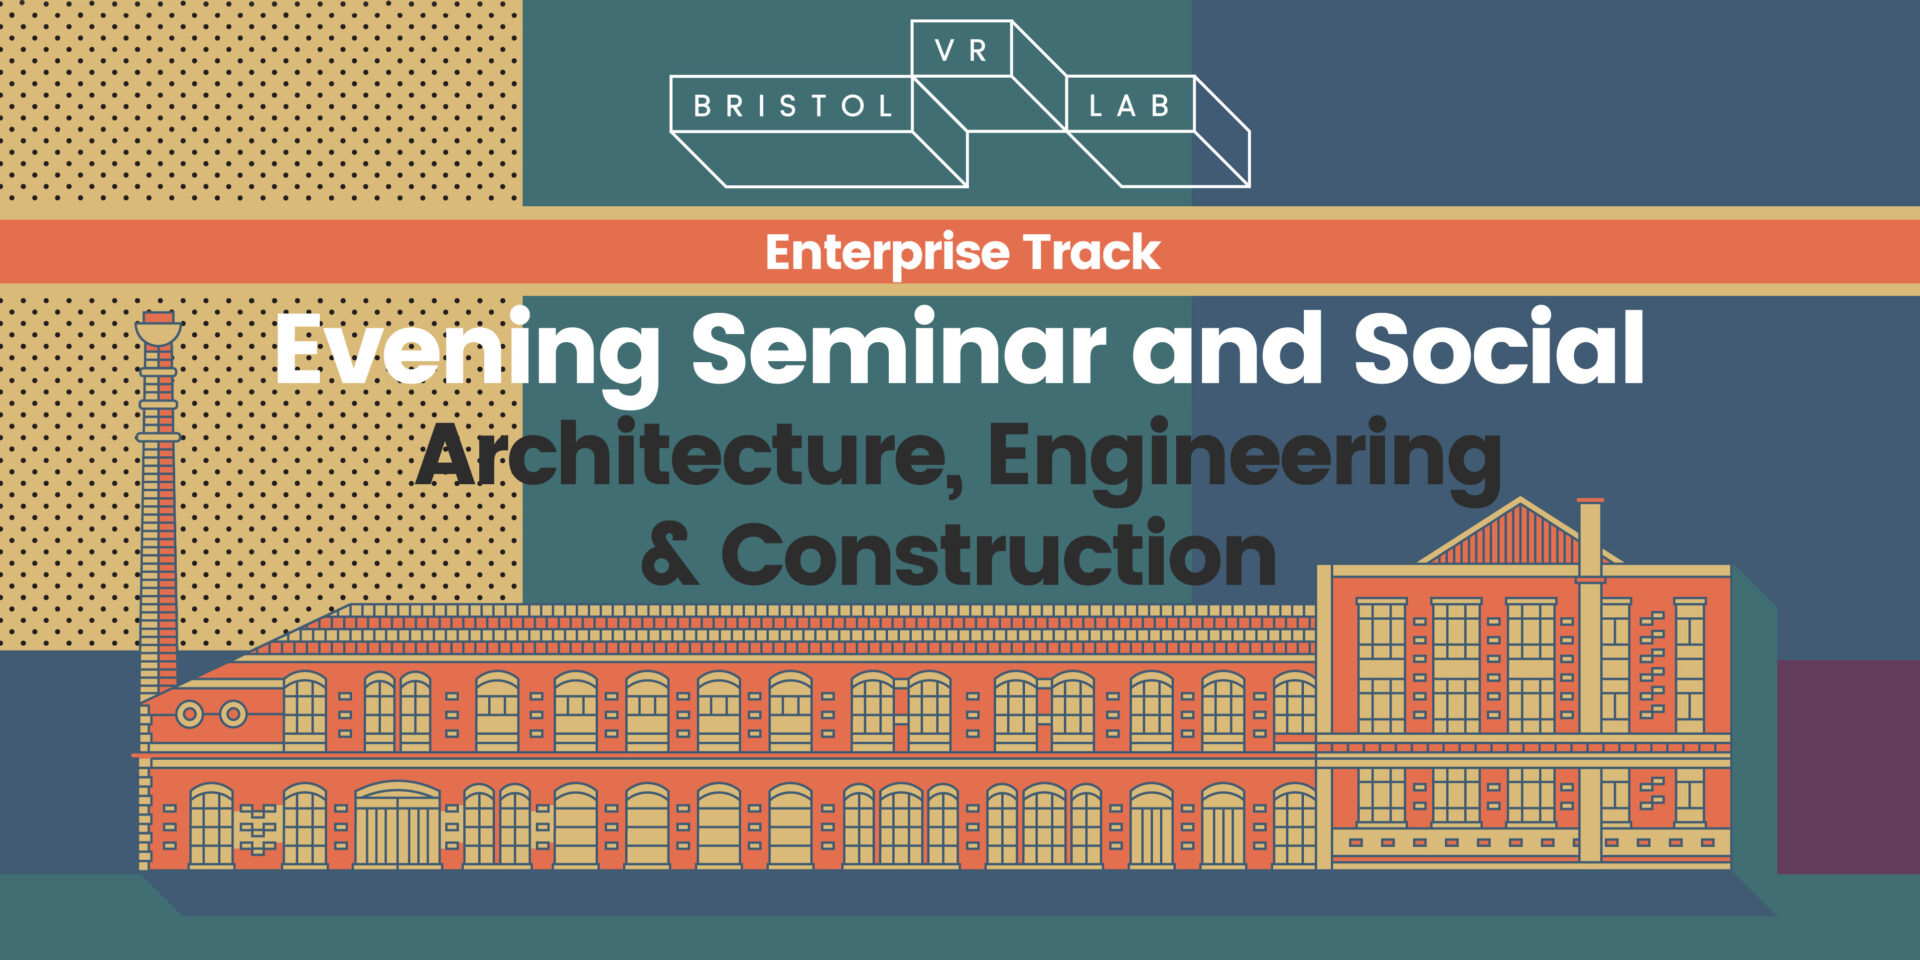 BVRL Evening Seminar and Social – Architecture, Engineering and Construction